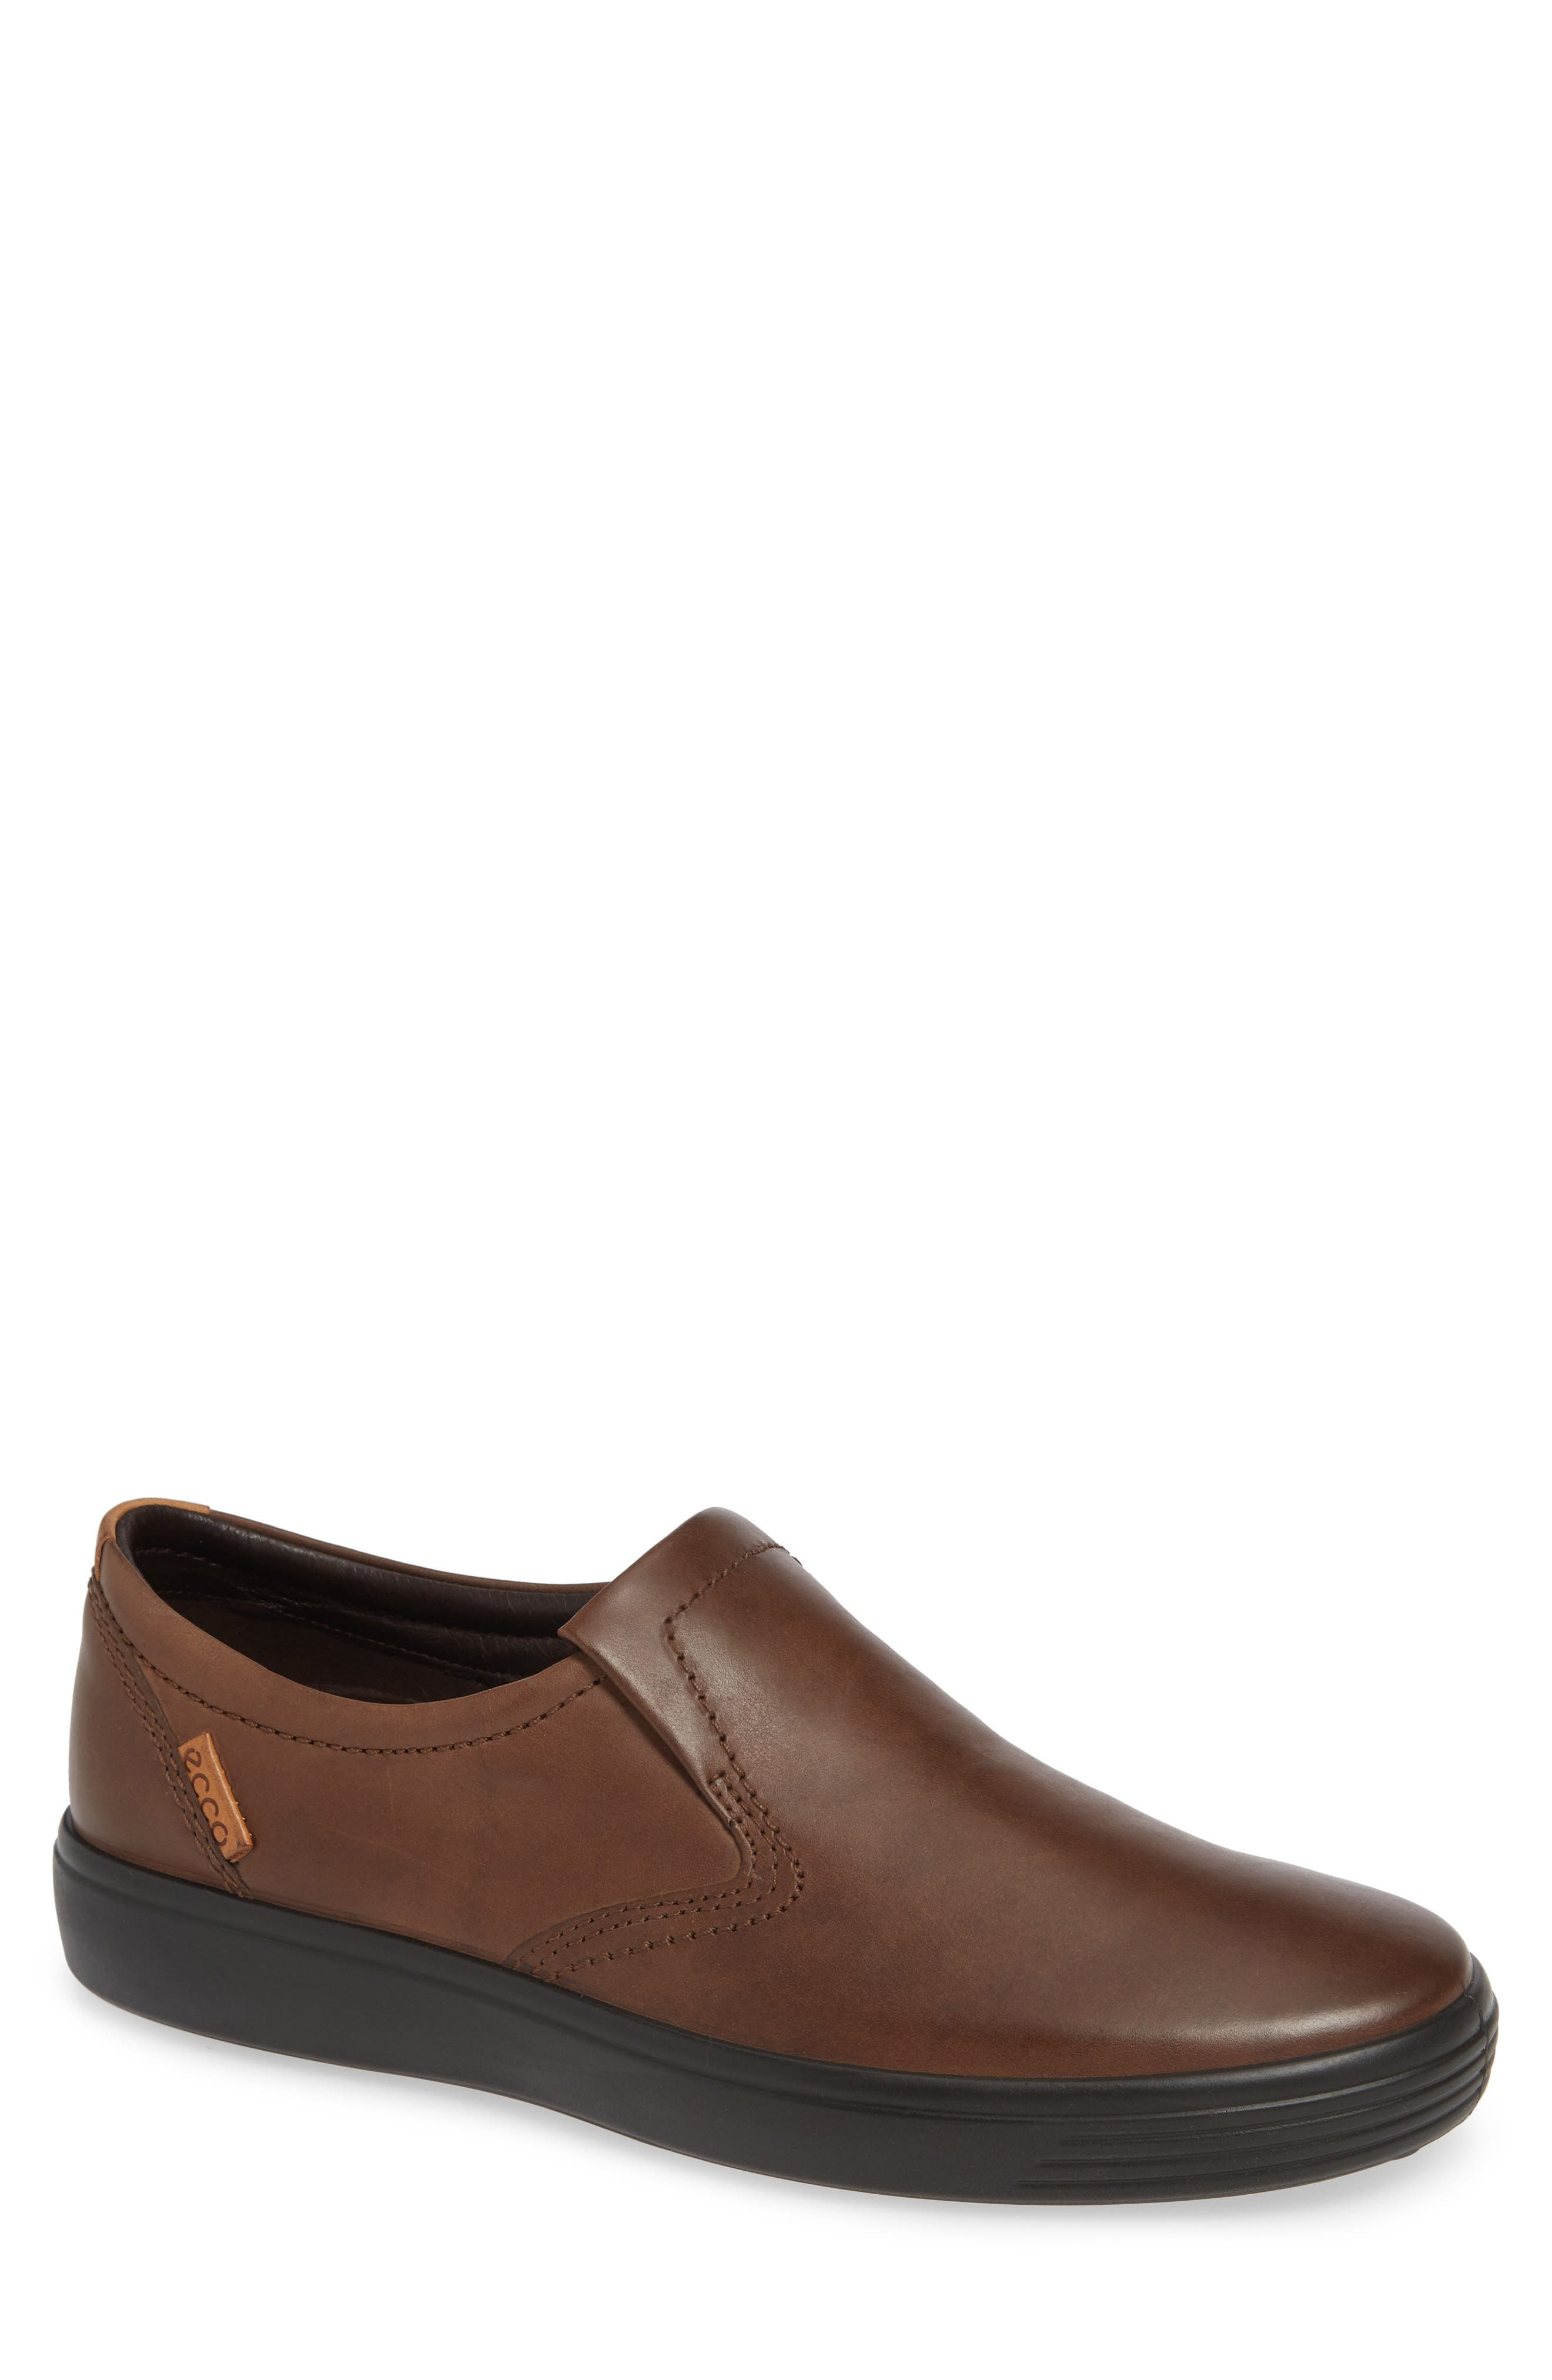 'Soft 7' Slip-On,                             Main thumbnail 1, color,                             BROWN LEATHER